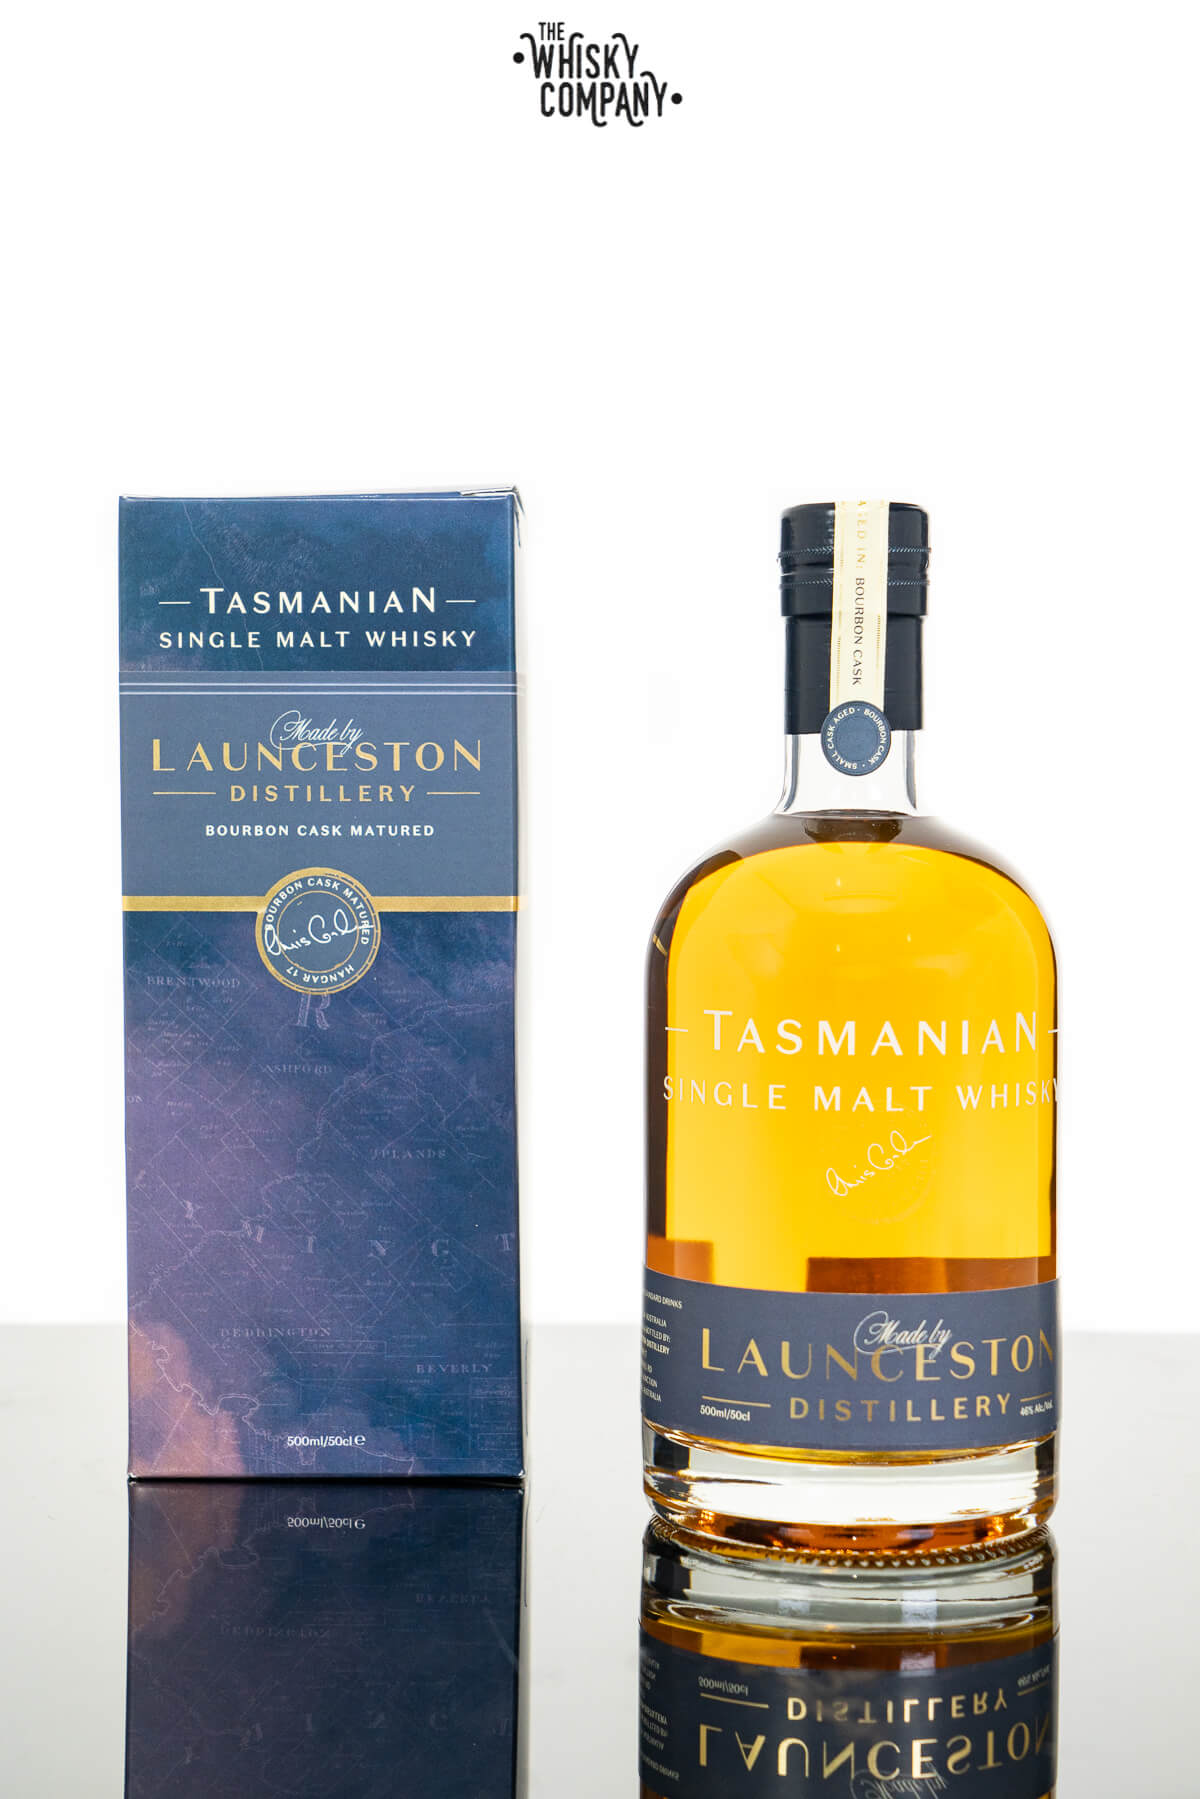 Launceston Bourbon Cask Matured Tasmanian Single Malt Whisky (500ml)